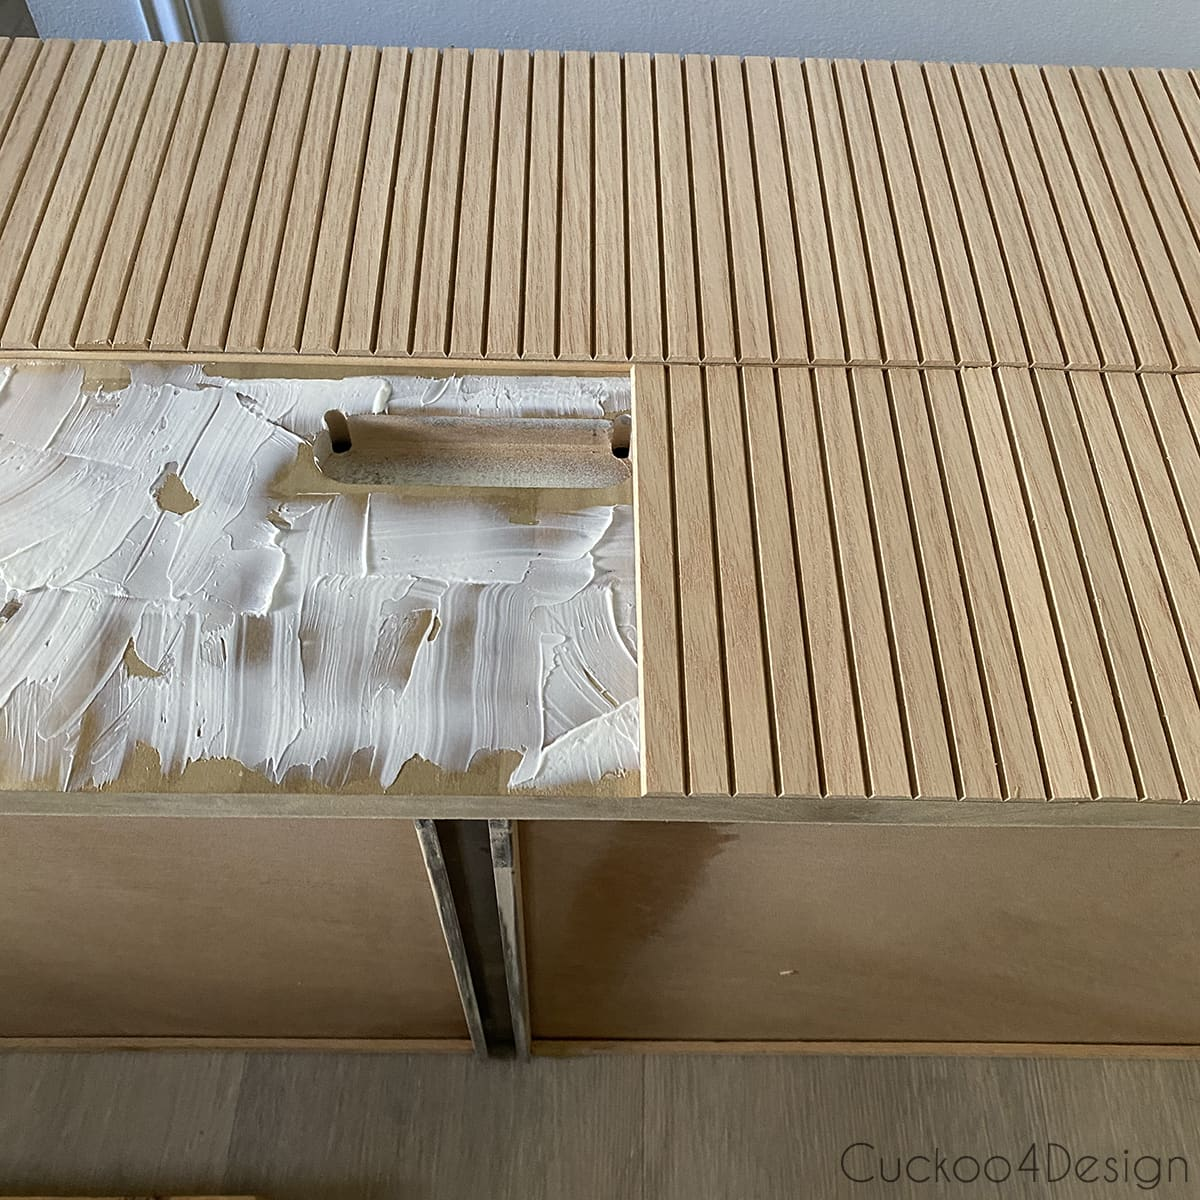 aligning fluted molding on drawers